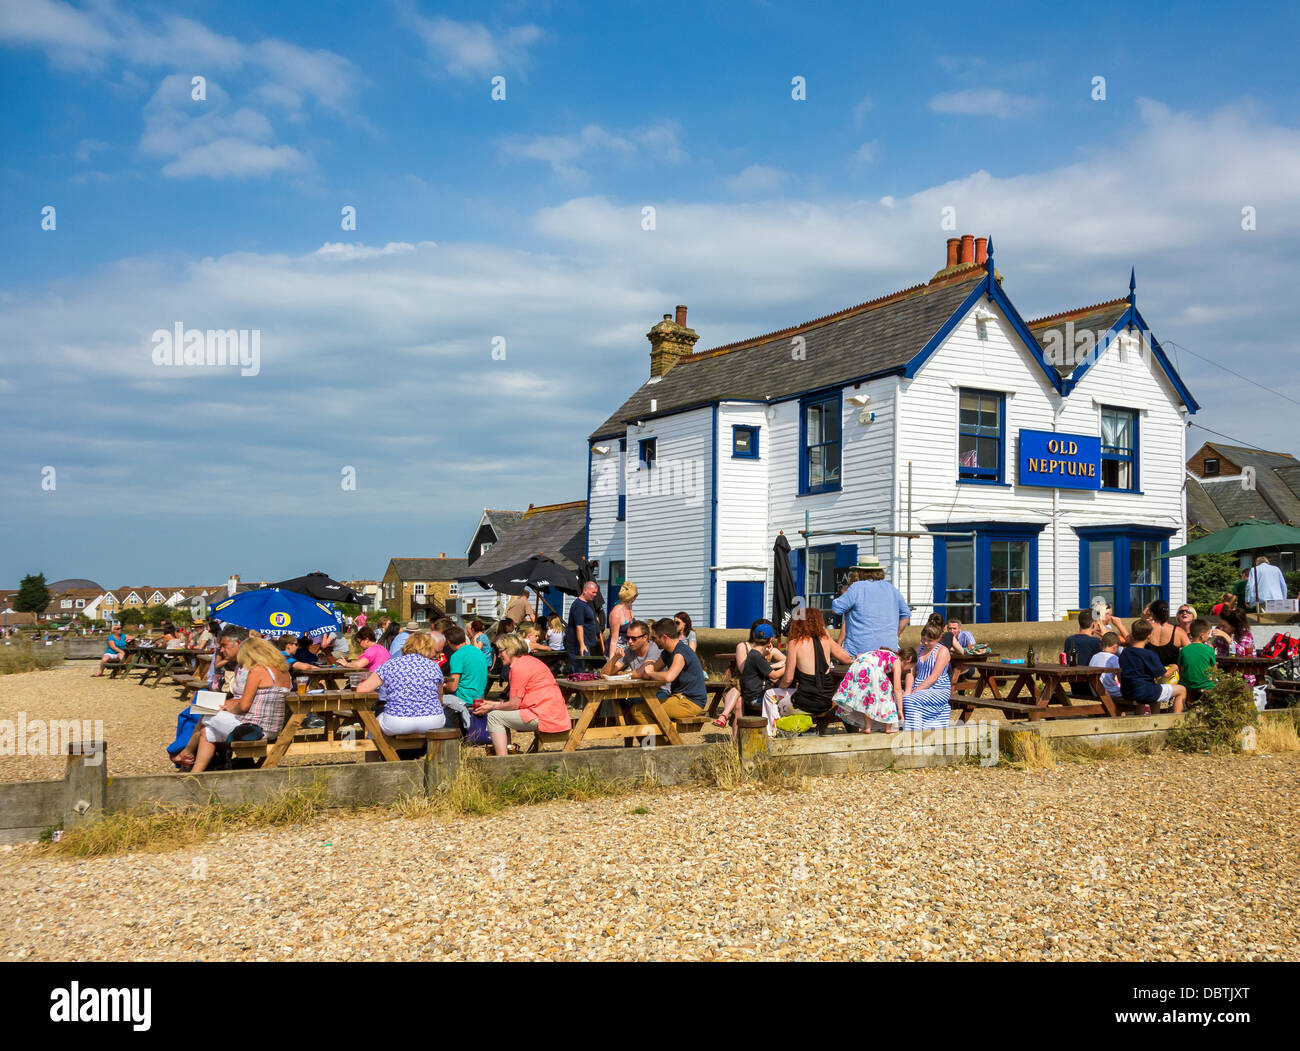 The Old Neptune Pub on the Beach Whitstable Kent Stock Photo